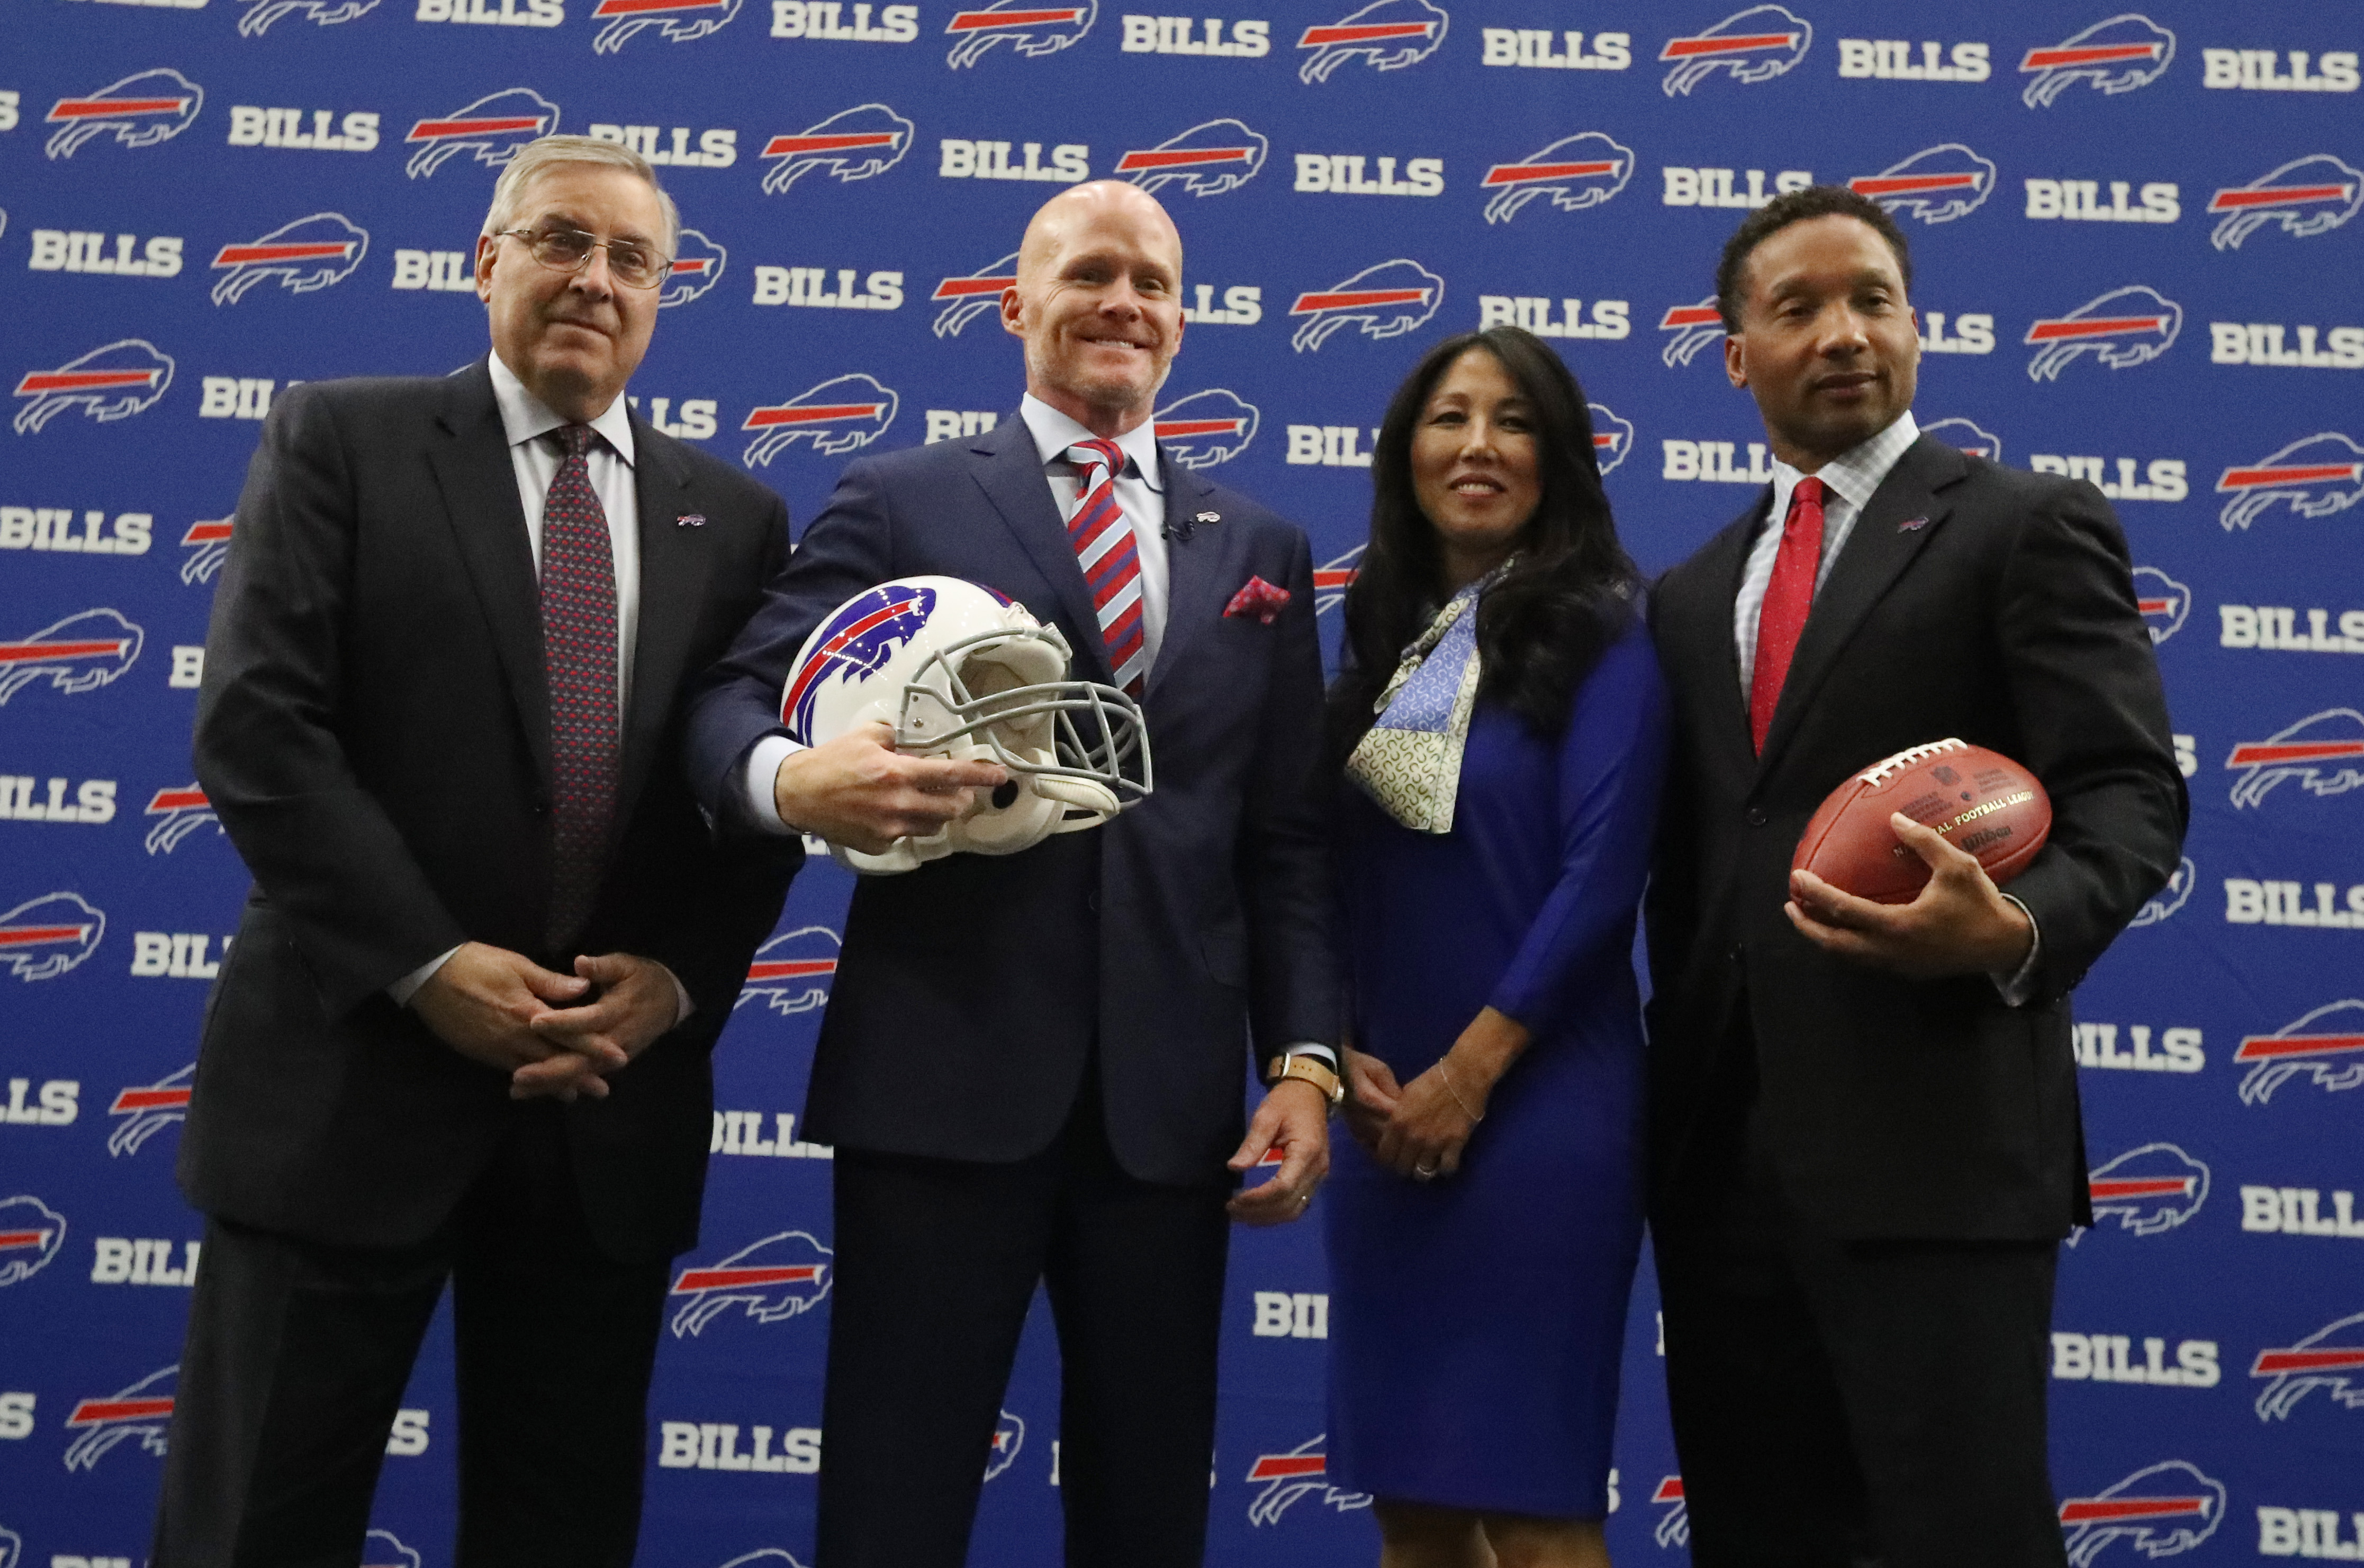 The Buffalo Bills, led by owners Terry and Kim Pegula, coach Sean McDermott and General Manager Doug Whaley, face long odds to win Super Bowl LII. (James P. McCoy/Buffalo News)